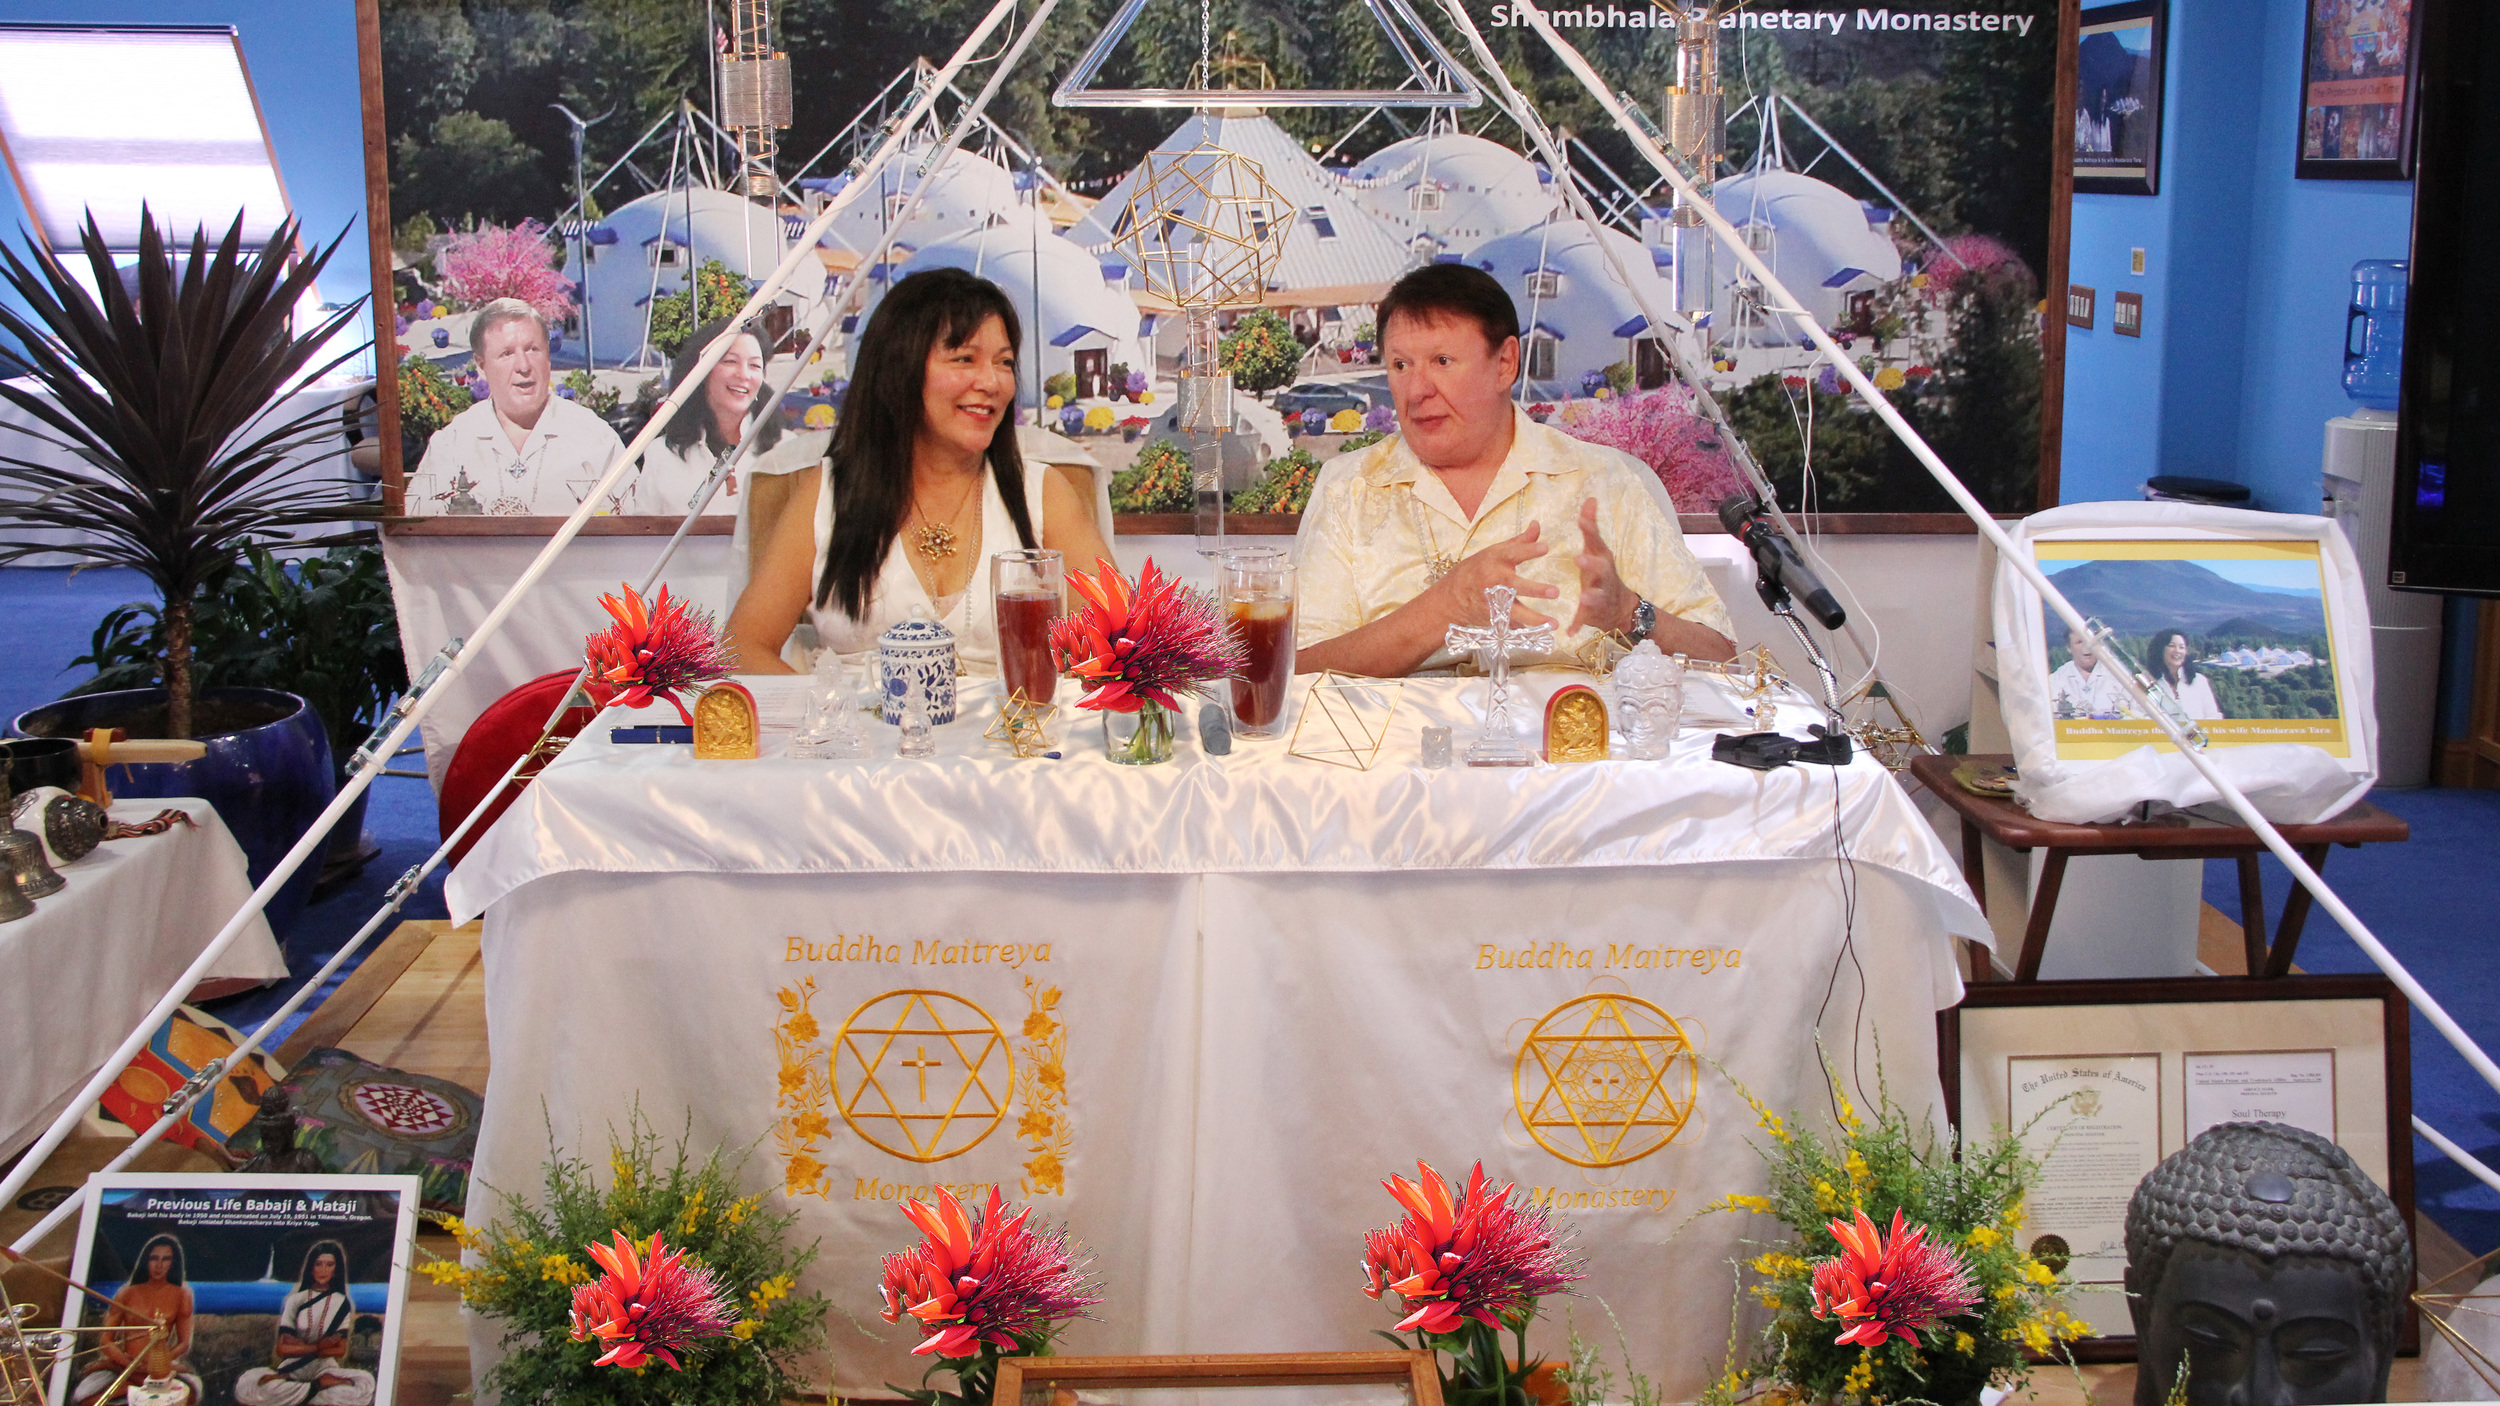 Buddha Maitreya the Christ and his wife, Mandarava Tara offer OM Pyramid Meditations every Saturday and Sunday live online or in person from within their Central Teaching Pyramid at Buddha Maitreya the Christ's Shambhala Monastery.  Learn more